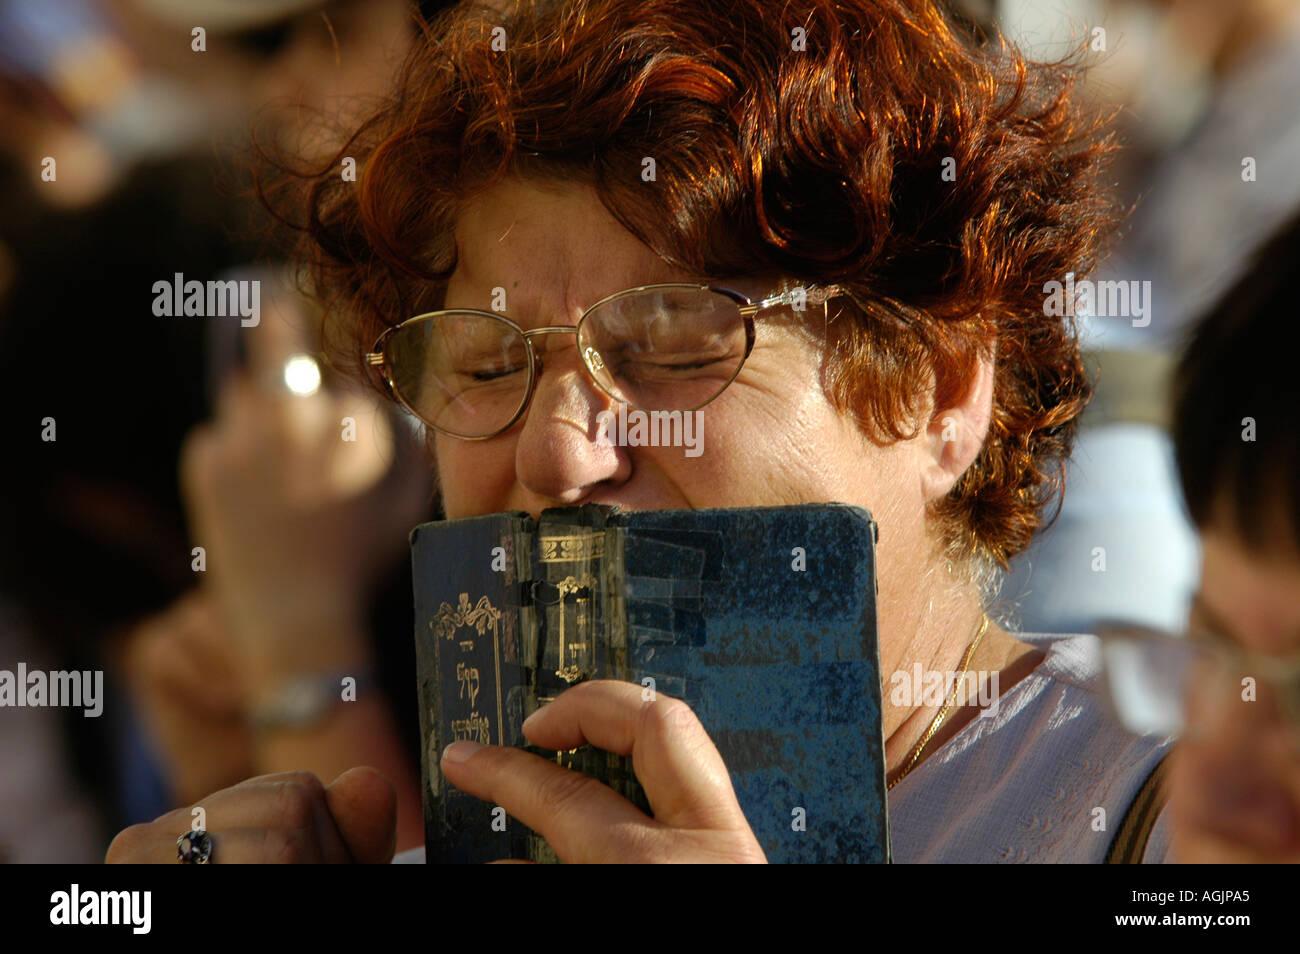 A Jewish worshiper holding a Siddur prayerbook during a prayer at the Western wall or Kotel East Jerusalem Israel - Stock Image